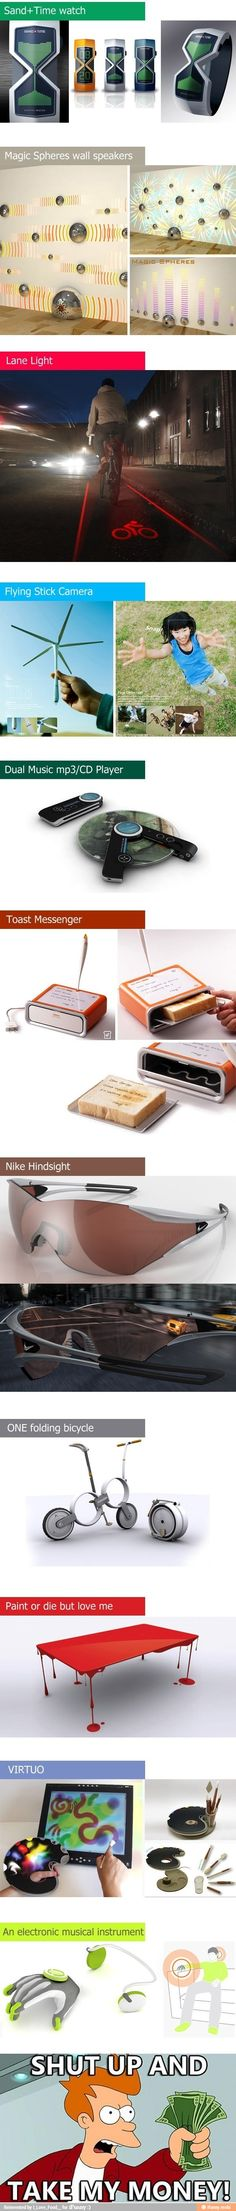 Very cool inventions